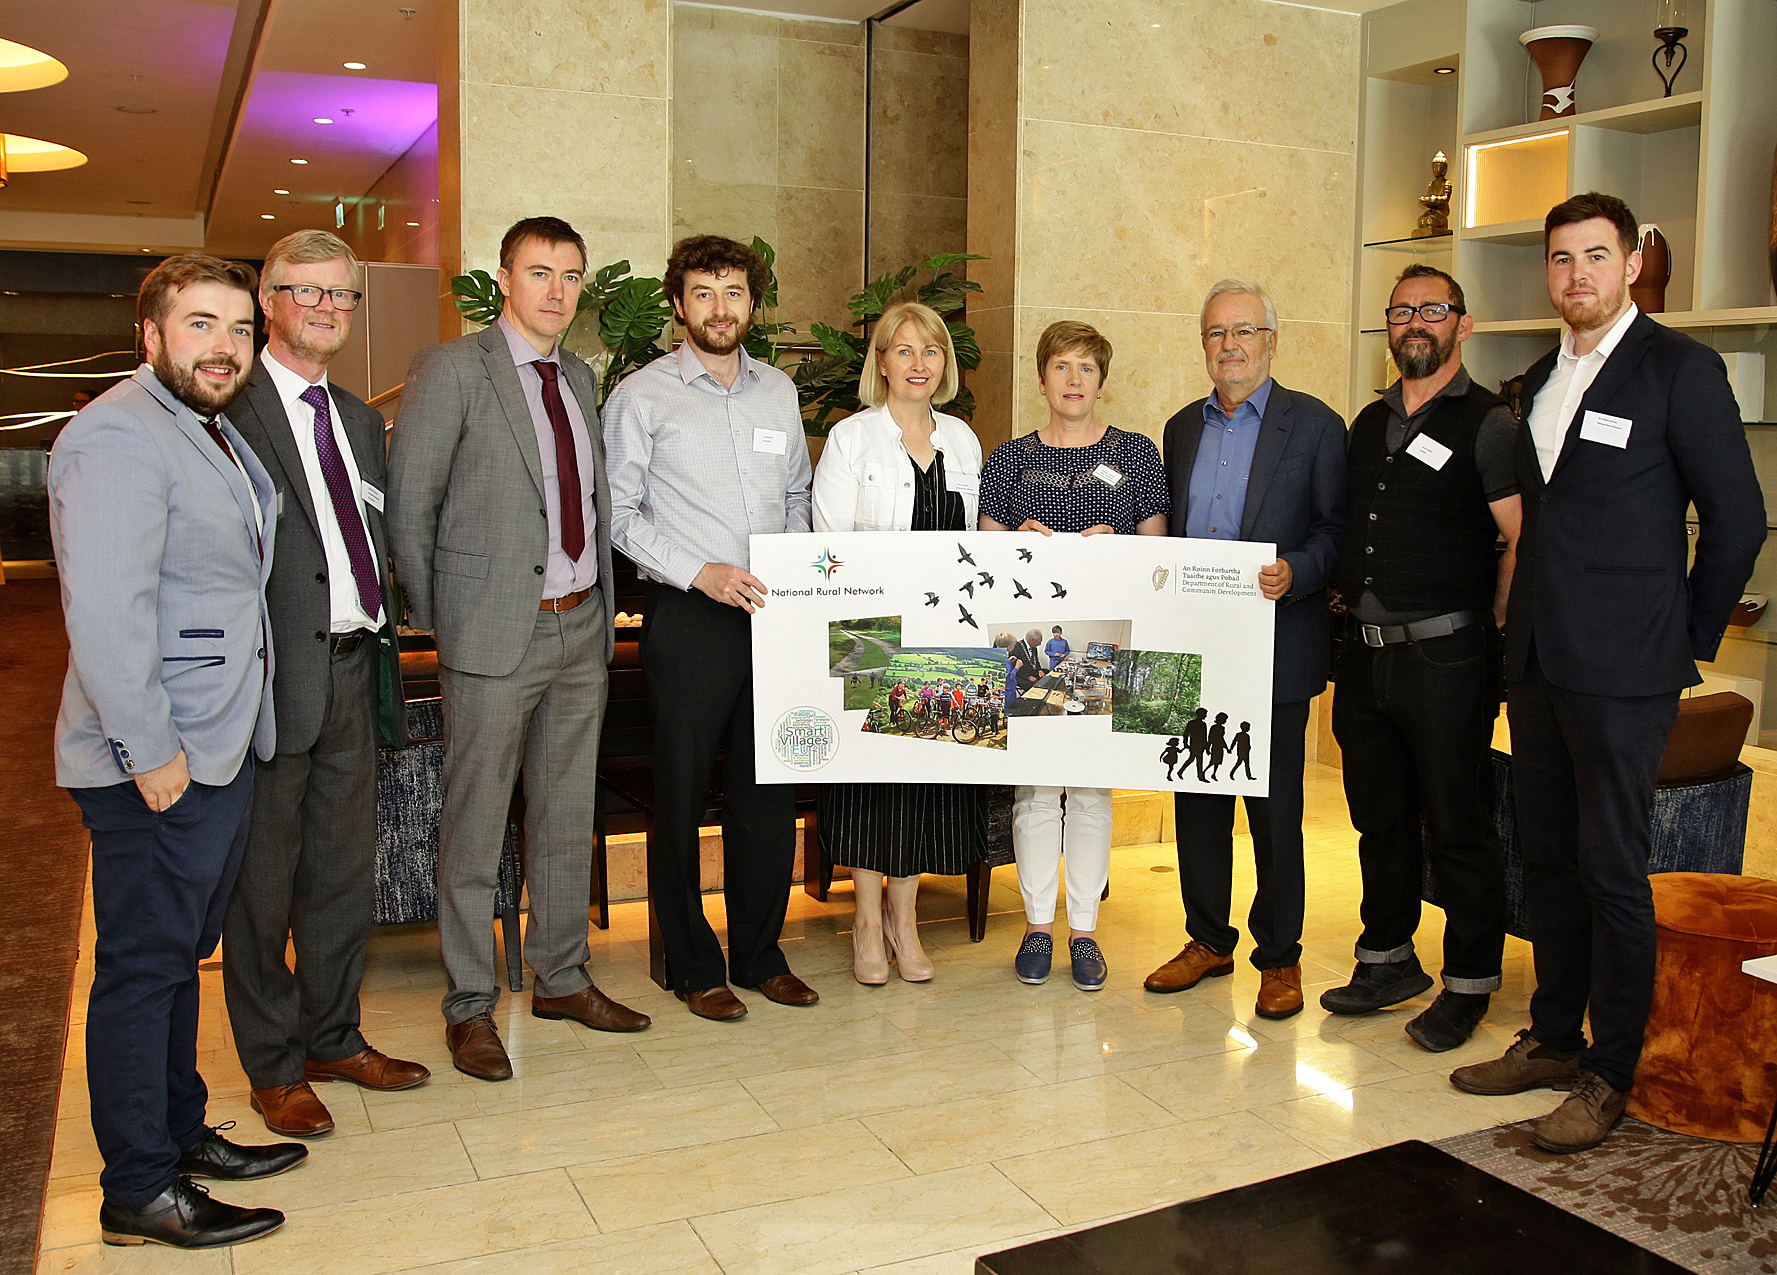 National 'Smart Villages and Rural Towns' Seminar organised by the NRN team at NUIG -image